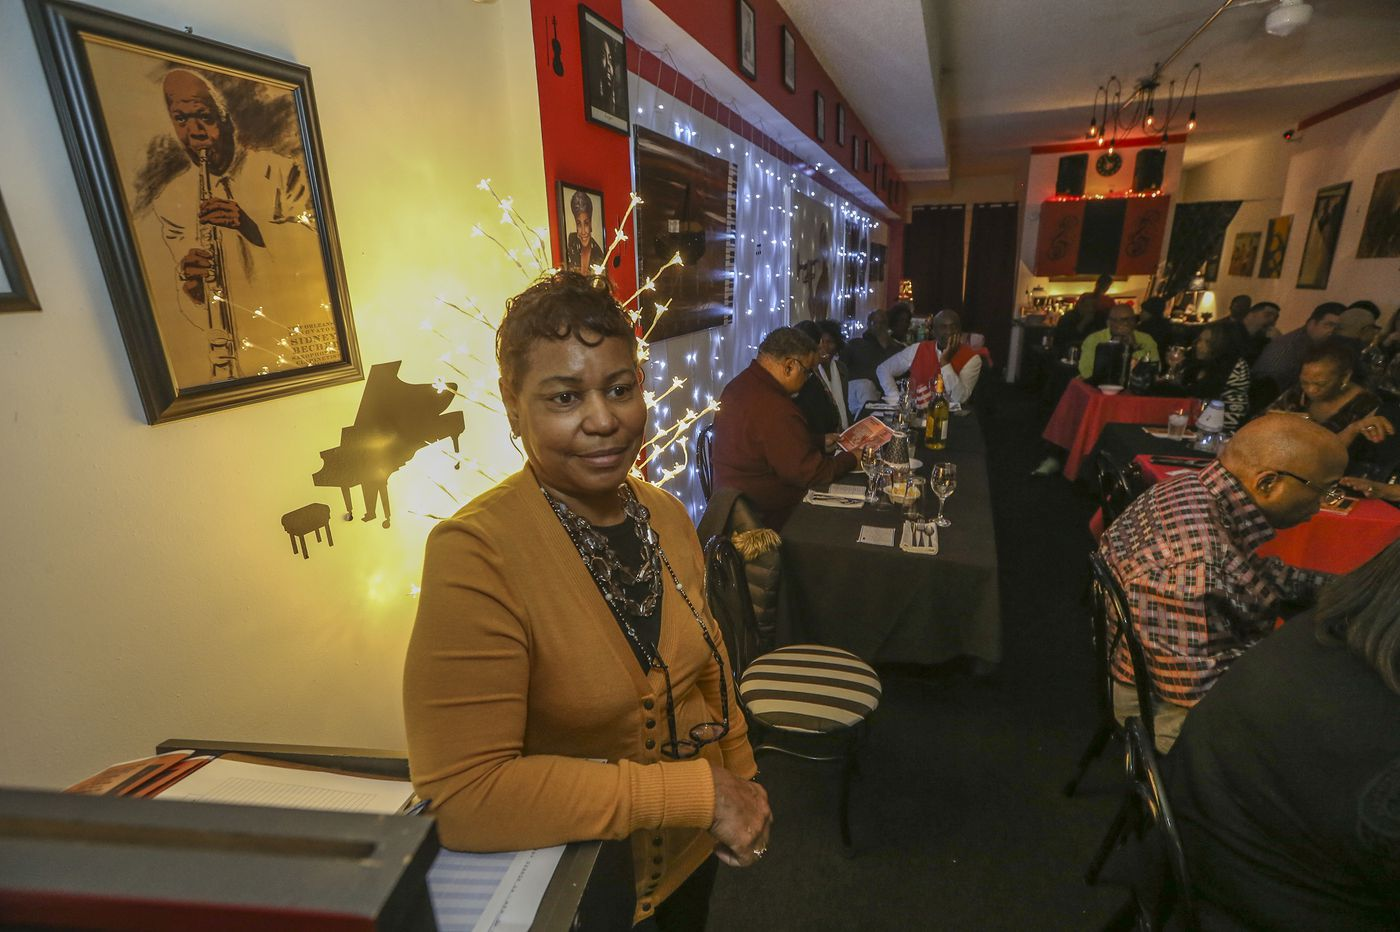 Welcome to May the Jazz Never Stop, a cafe with a musical mission in Haddon Heights